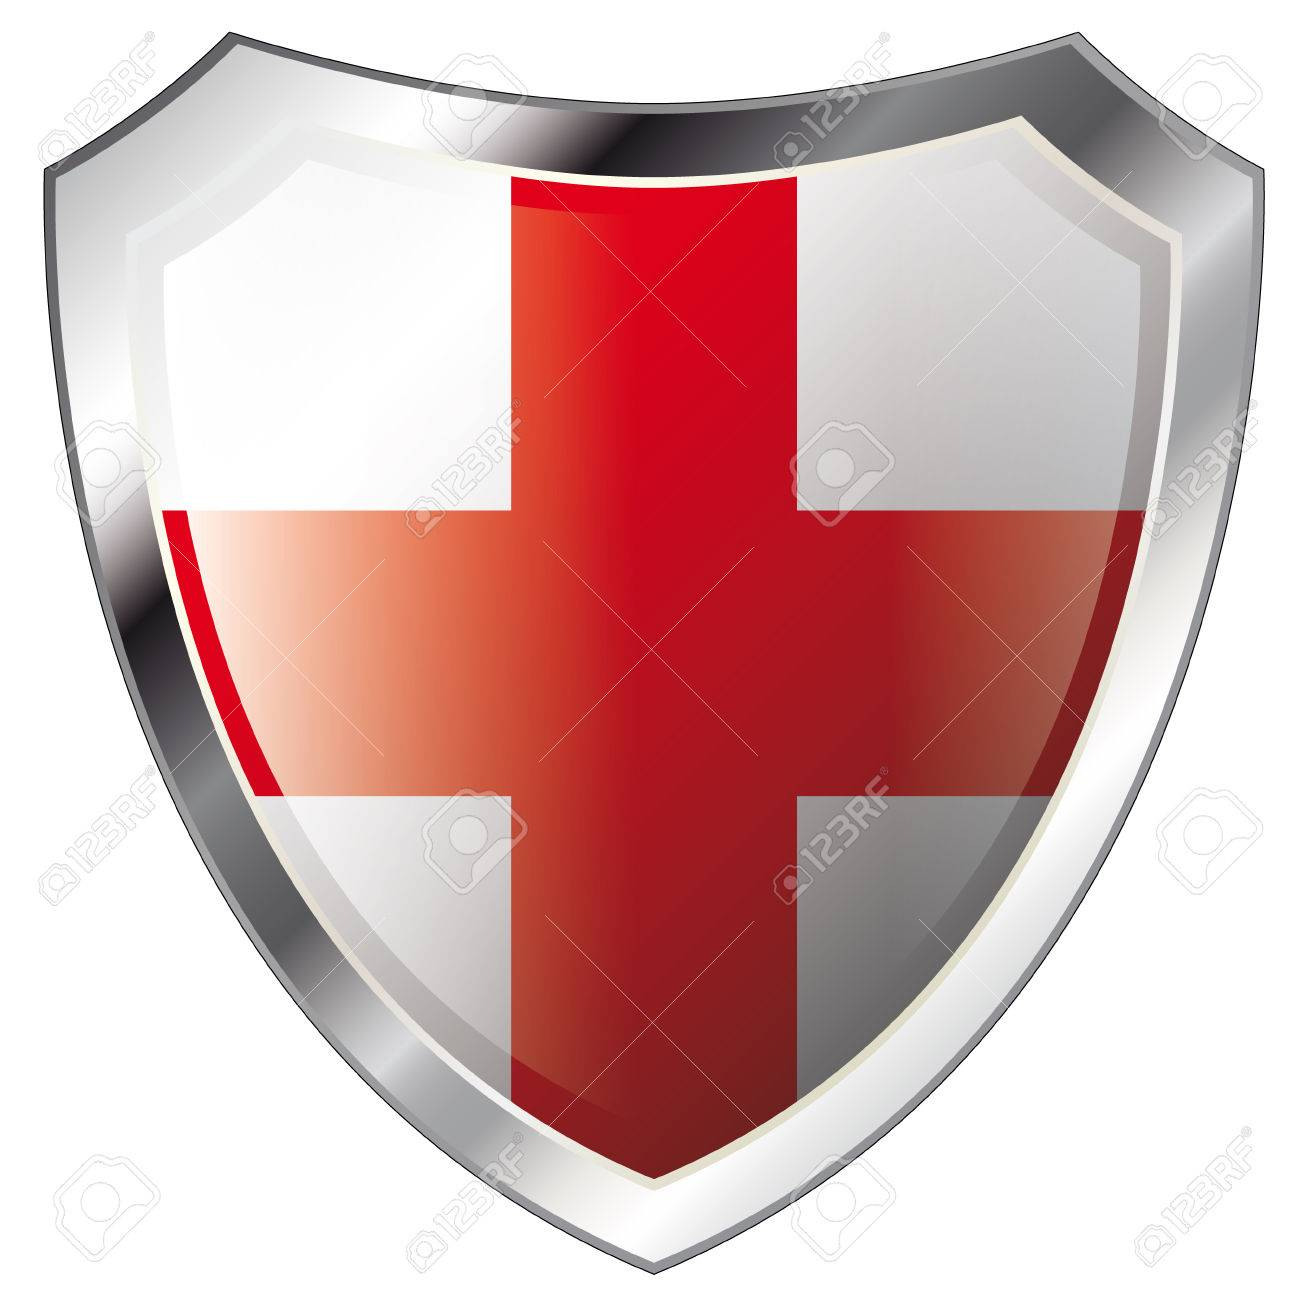 england flag on metal shiny shield vector illustration. Collection of flags on shield against white background. Abstract isolated object. Stock Vector - 6113195